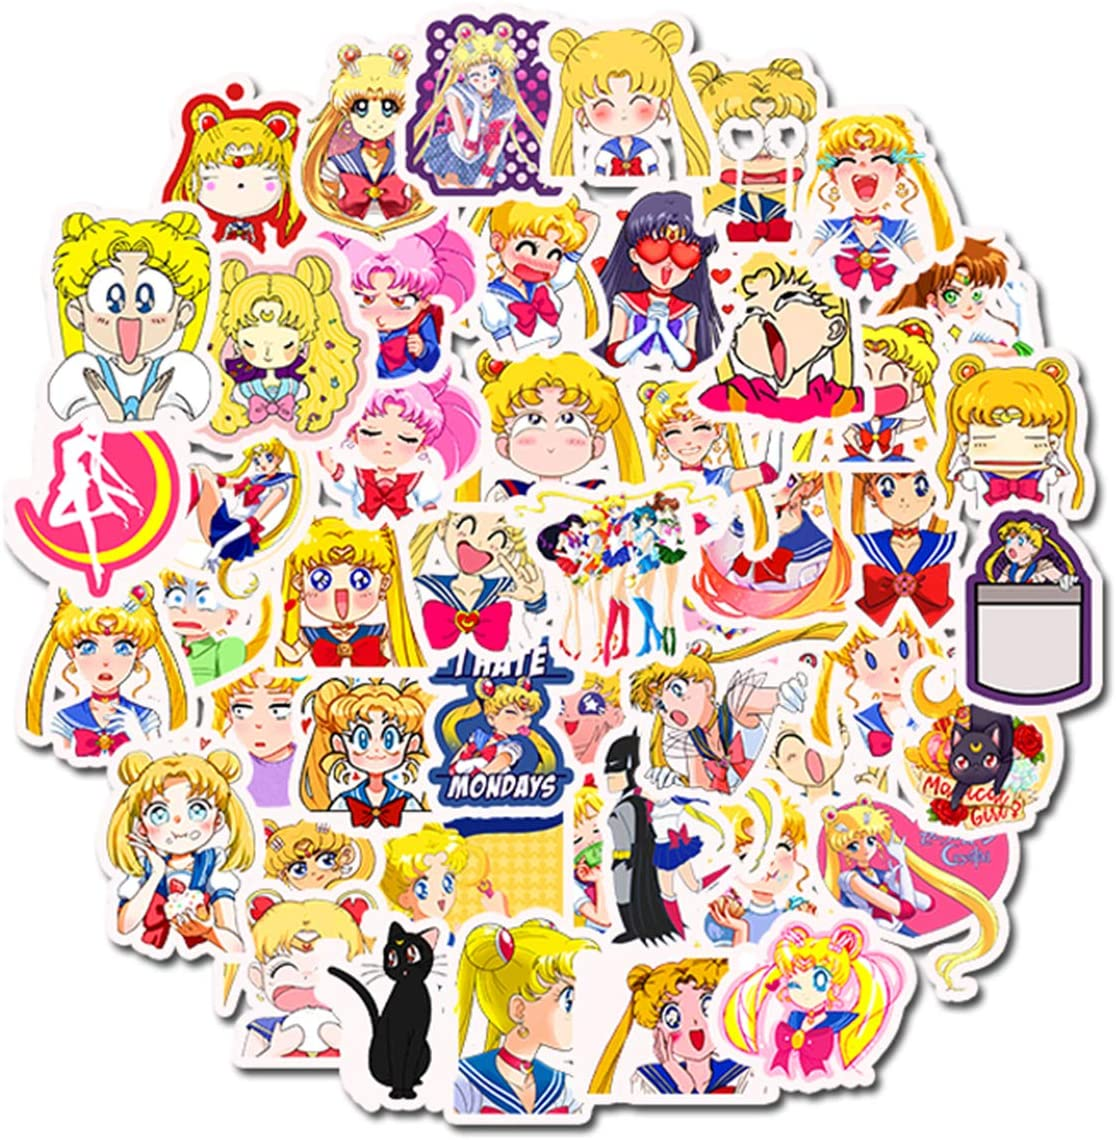 Sailor Moon Anime Girl Stickers Laptop Stickers Skateboard Snowboard Car Bicycle Luggage Decal 50pcs Pack